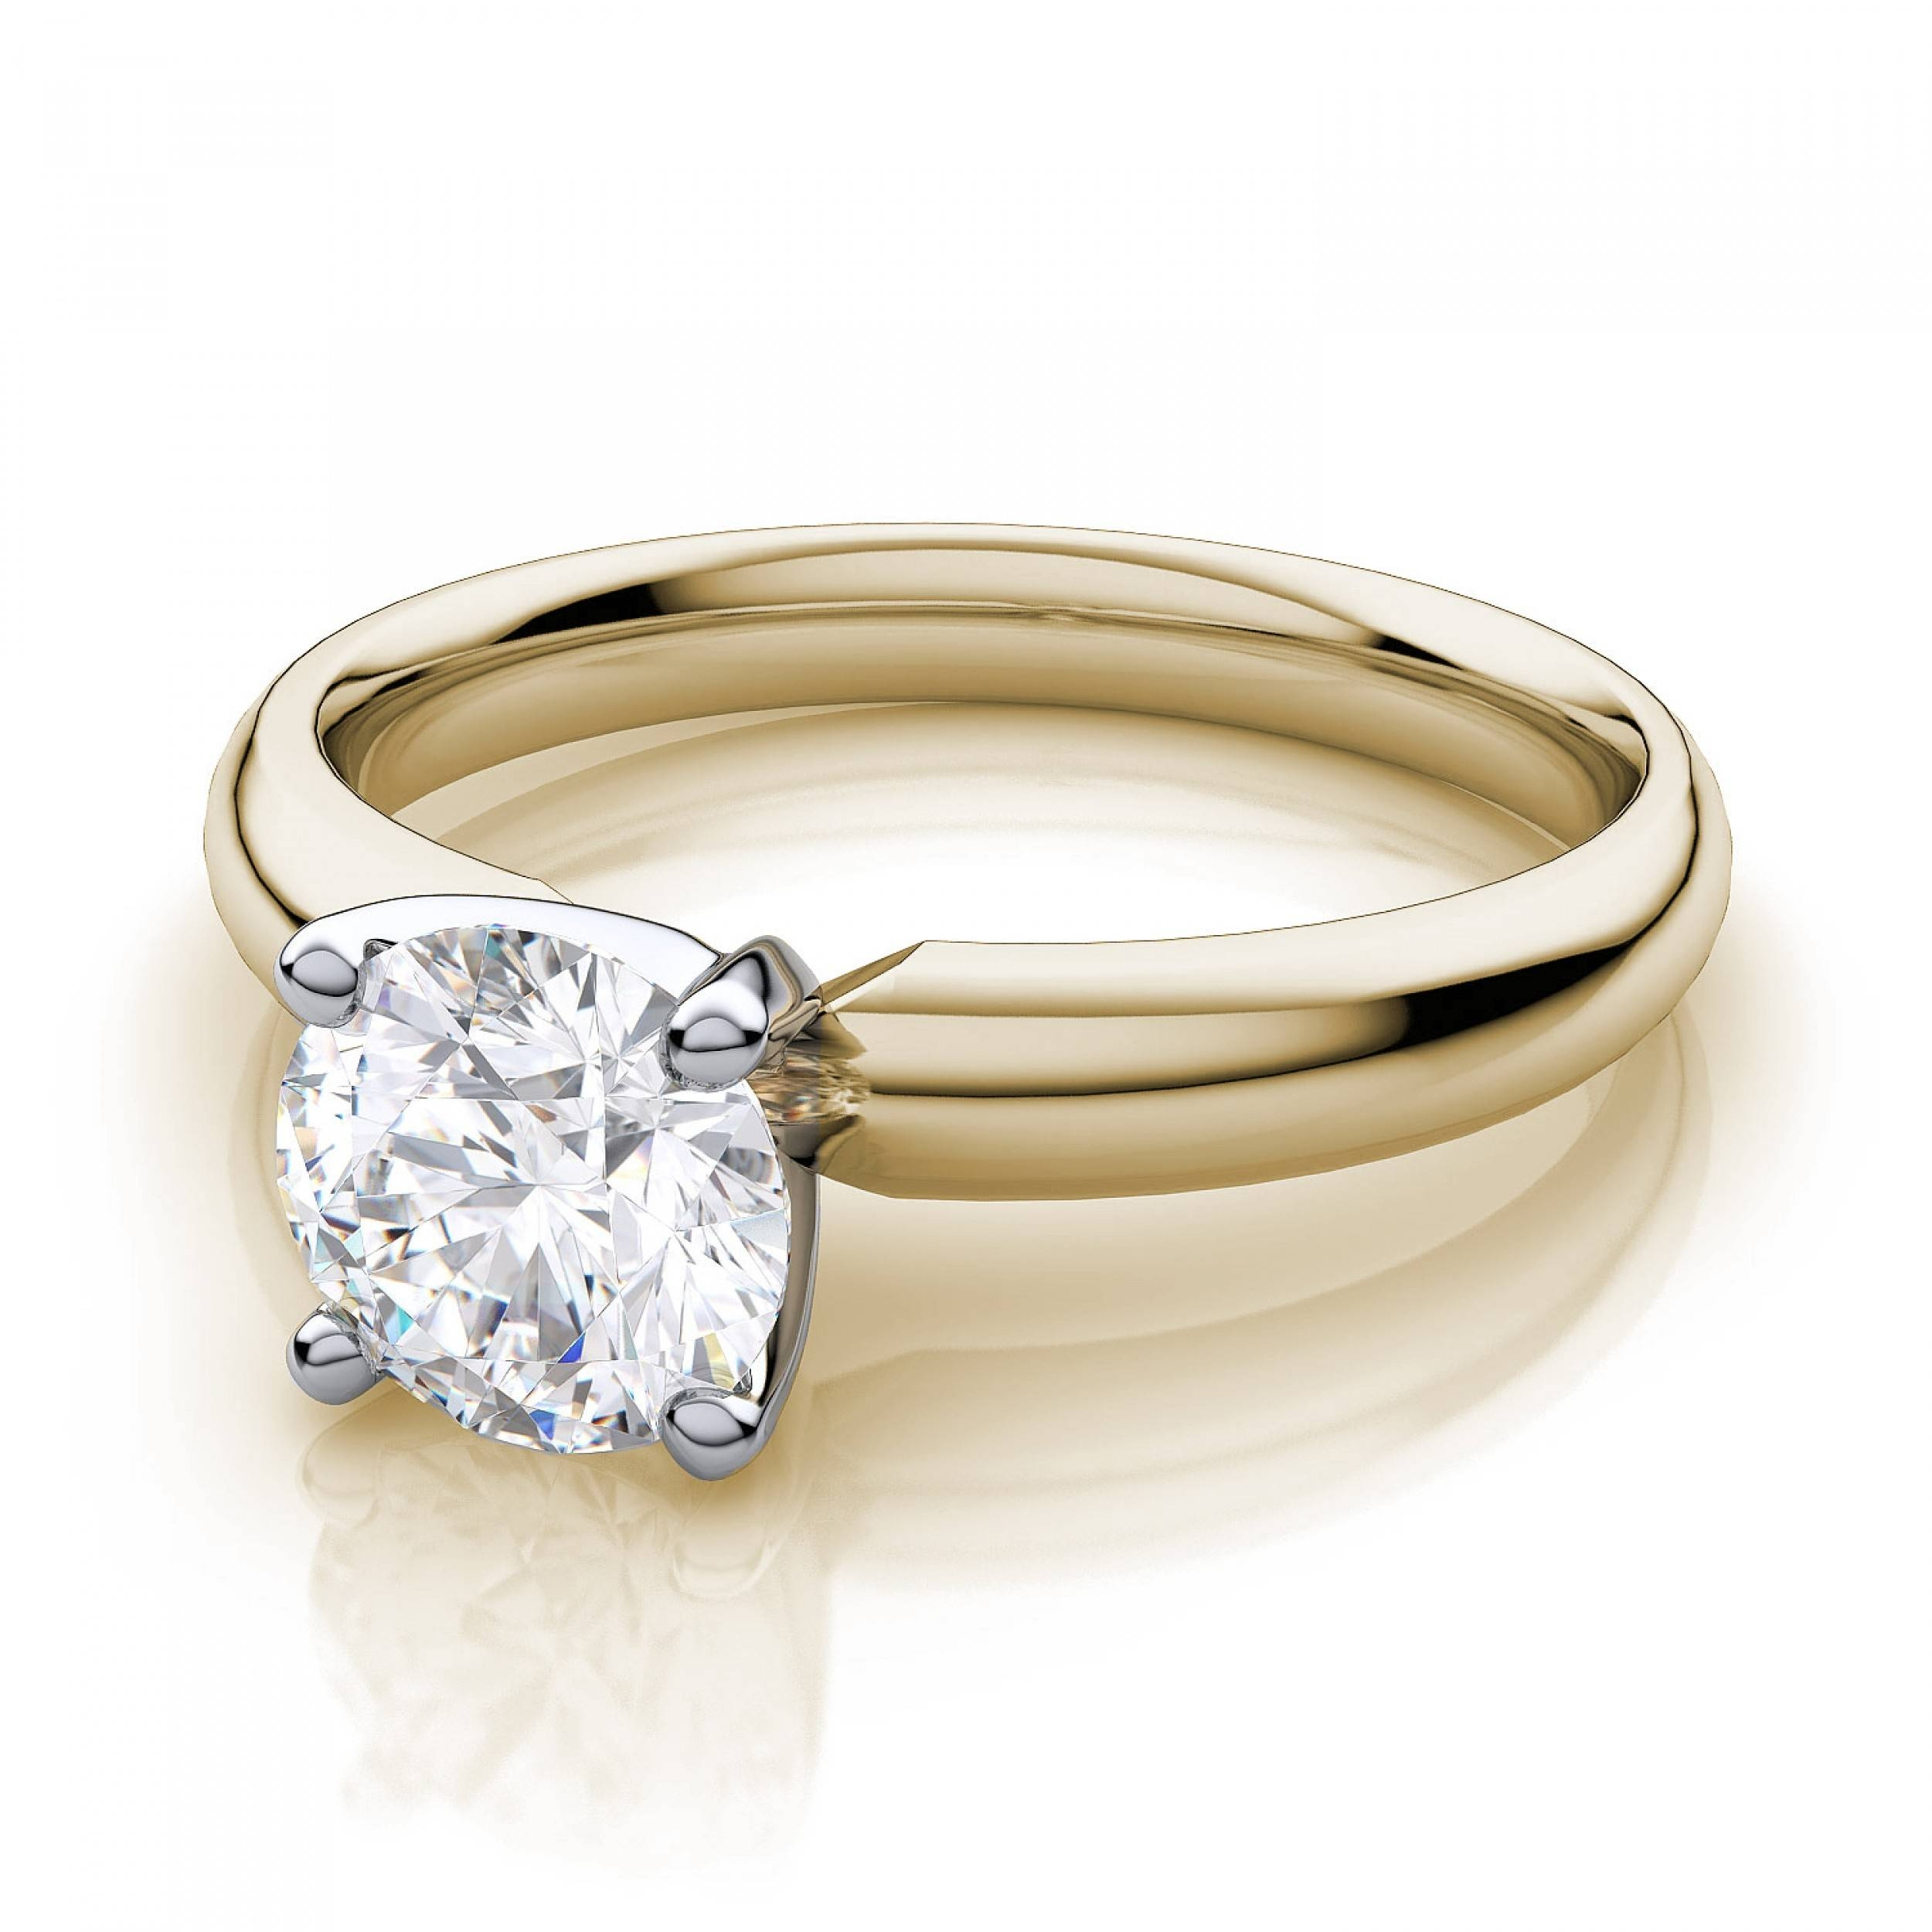 Classic Round Diamond Solitaire Engagement Ring In 18k Yellow Gold With Traditional Gold Engagement Rings (View 2 of 15)